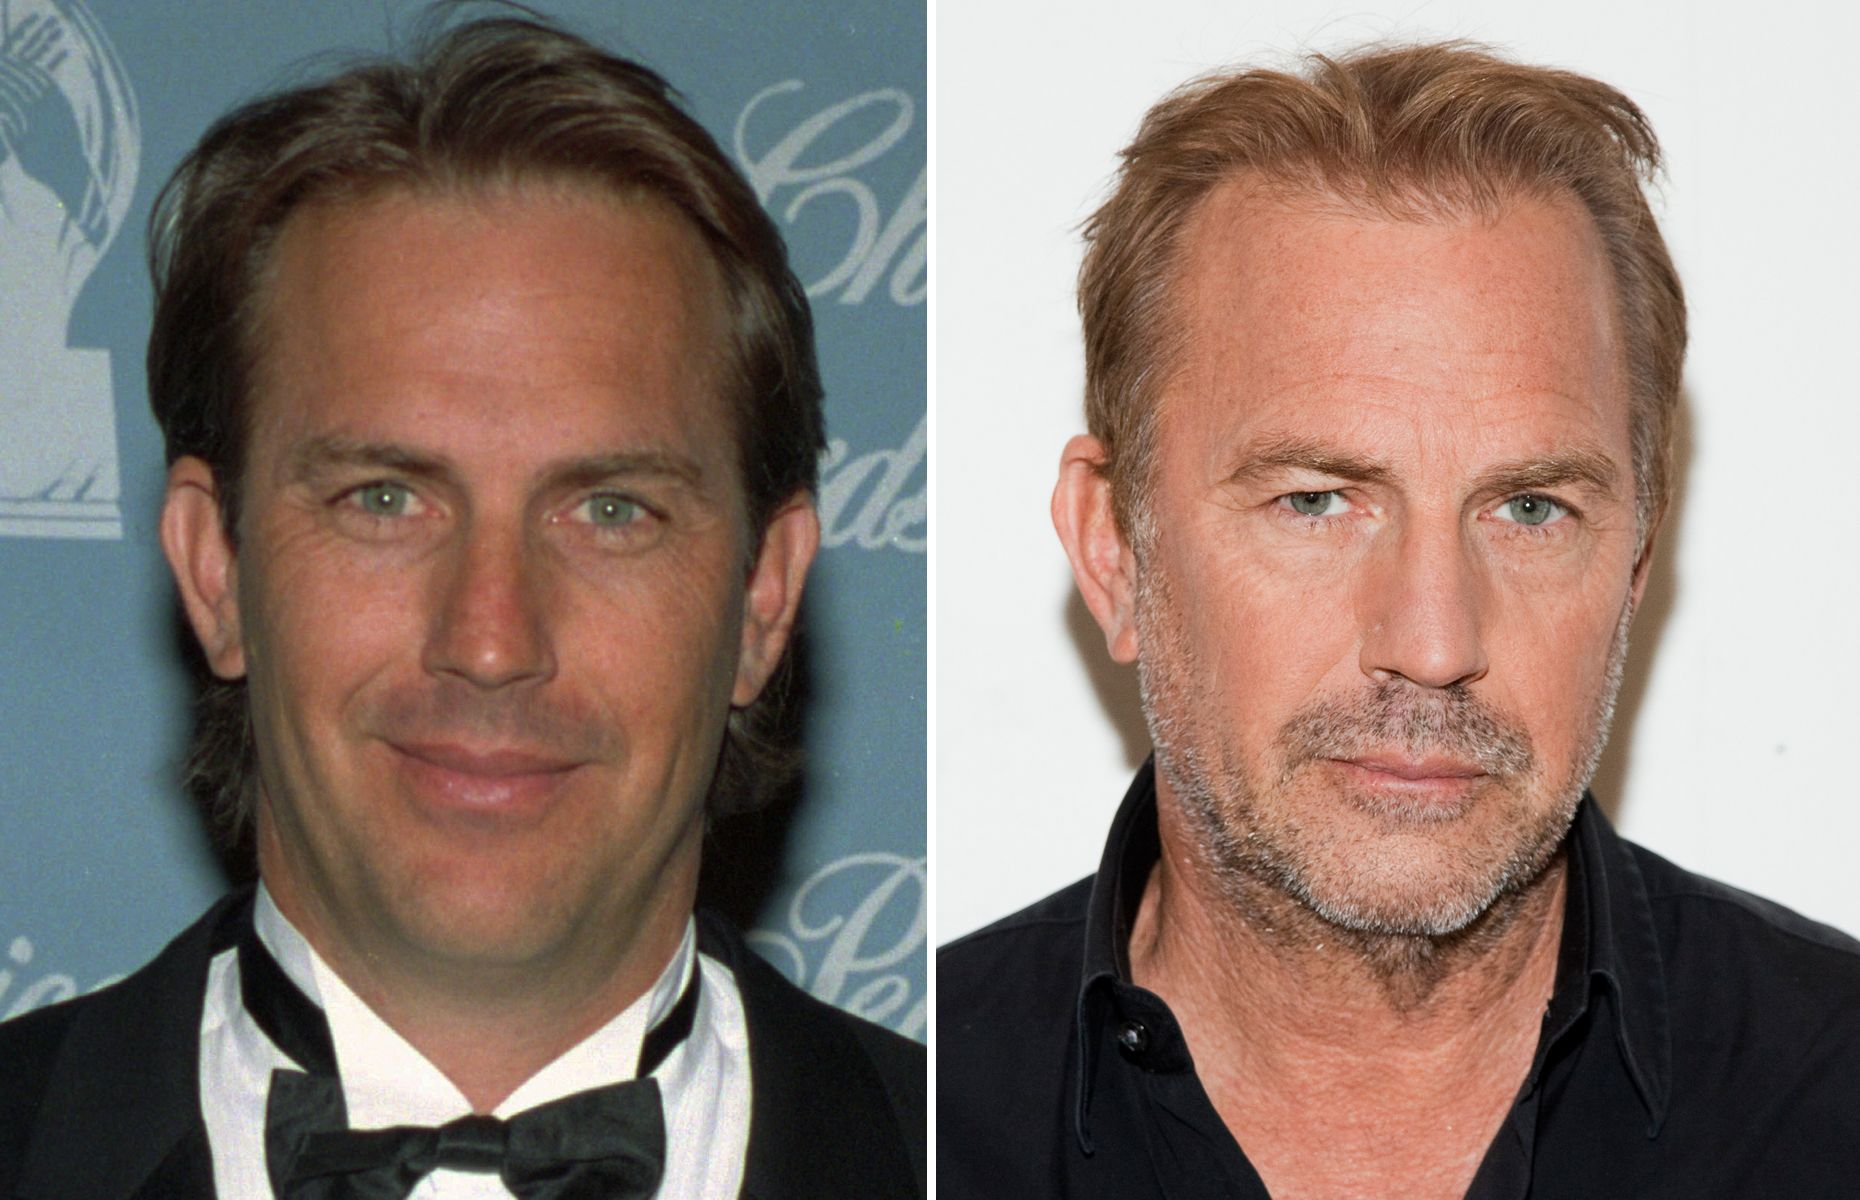 Actors Of The '90s: Then And Now